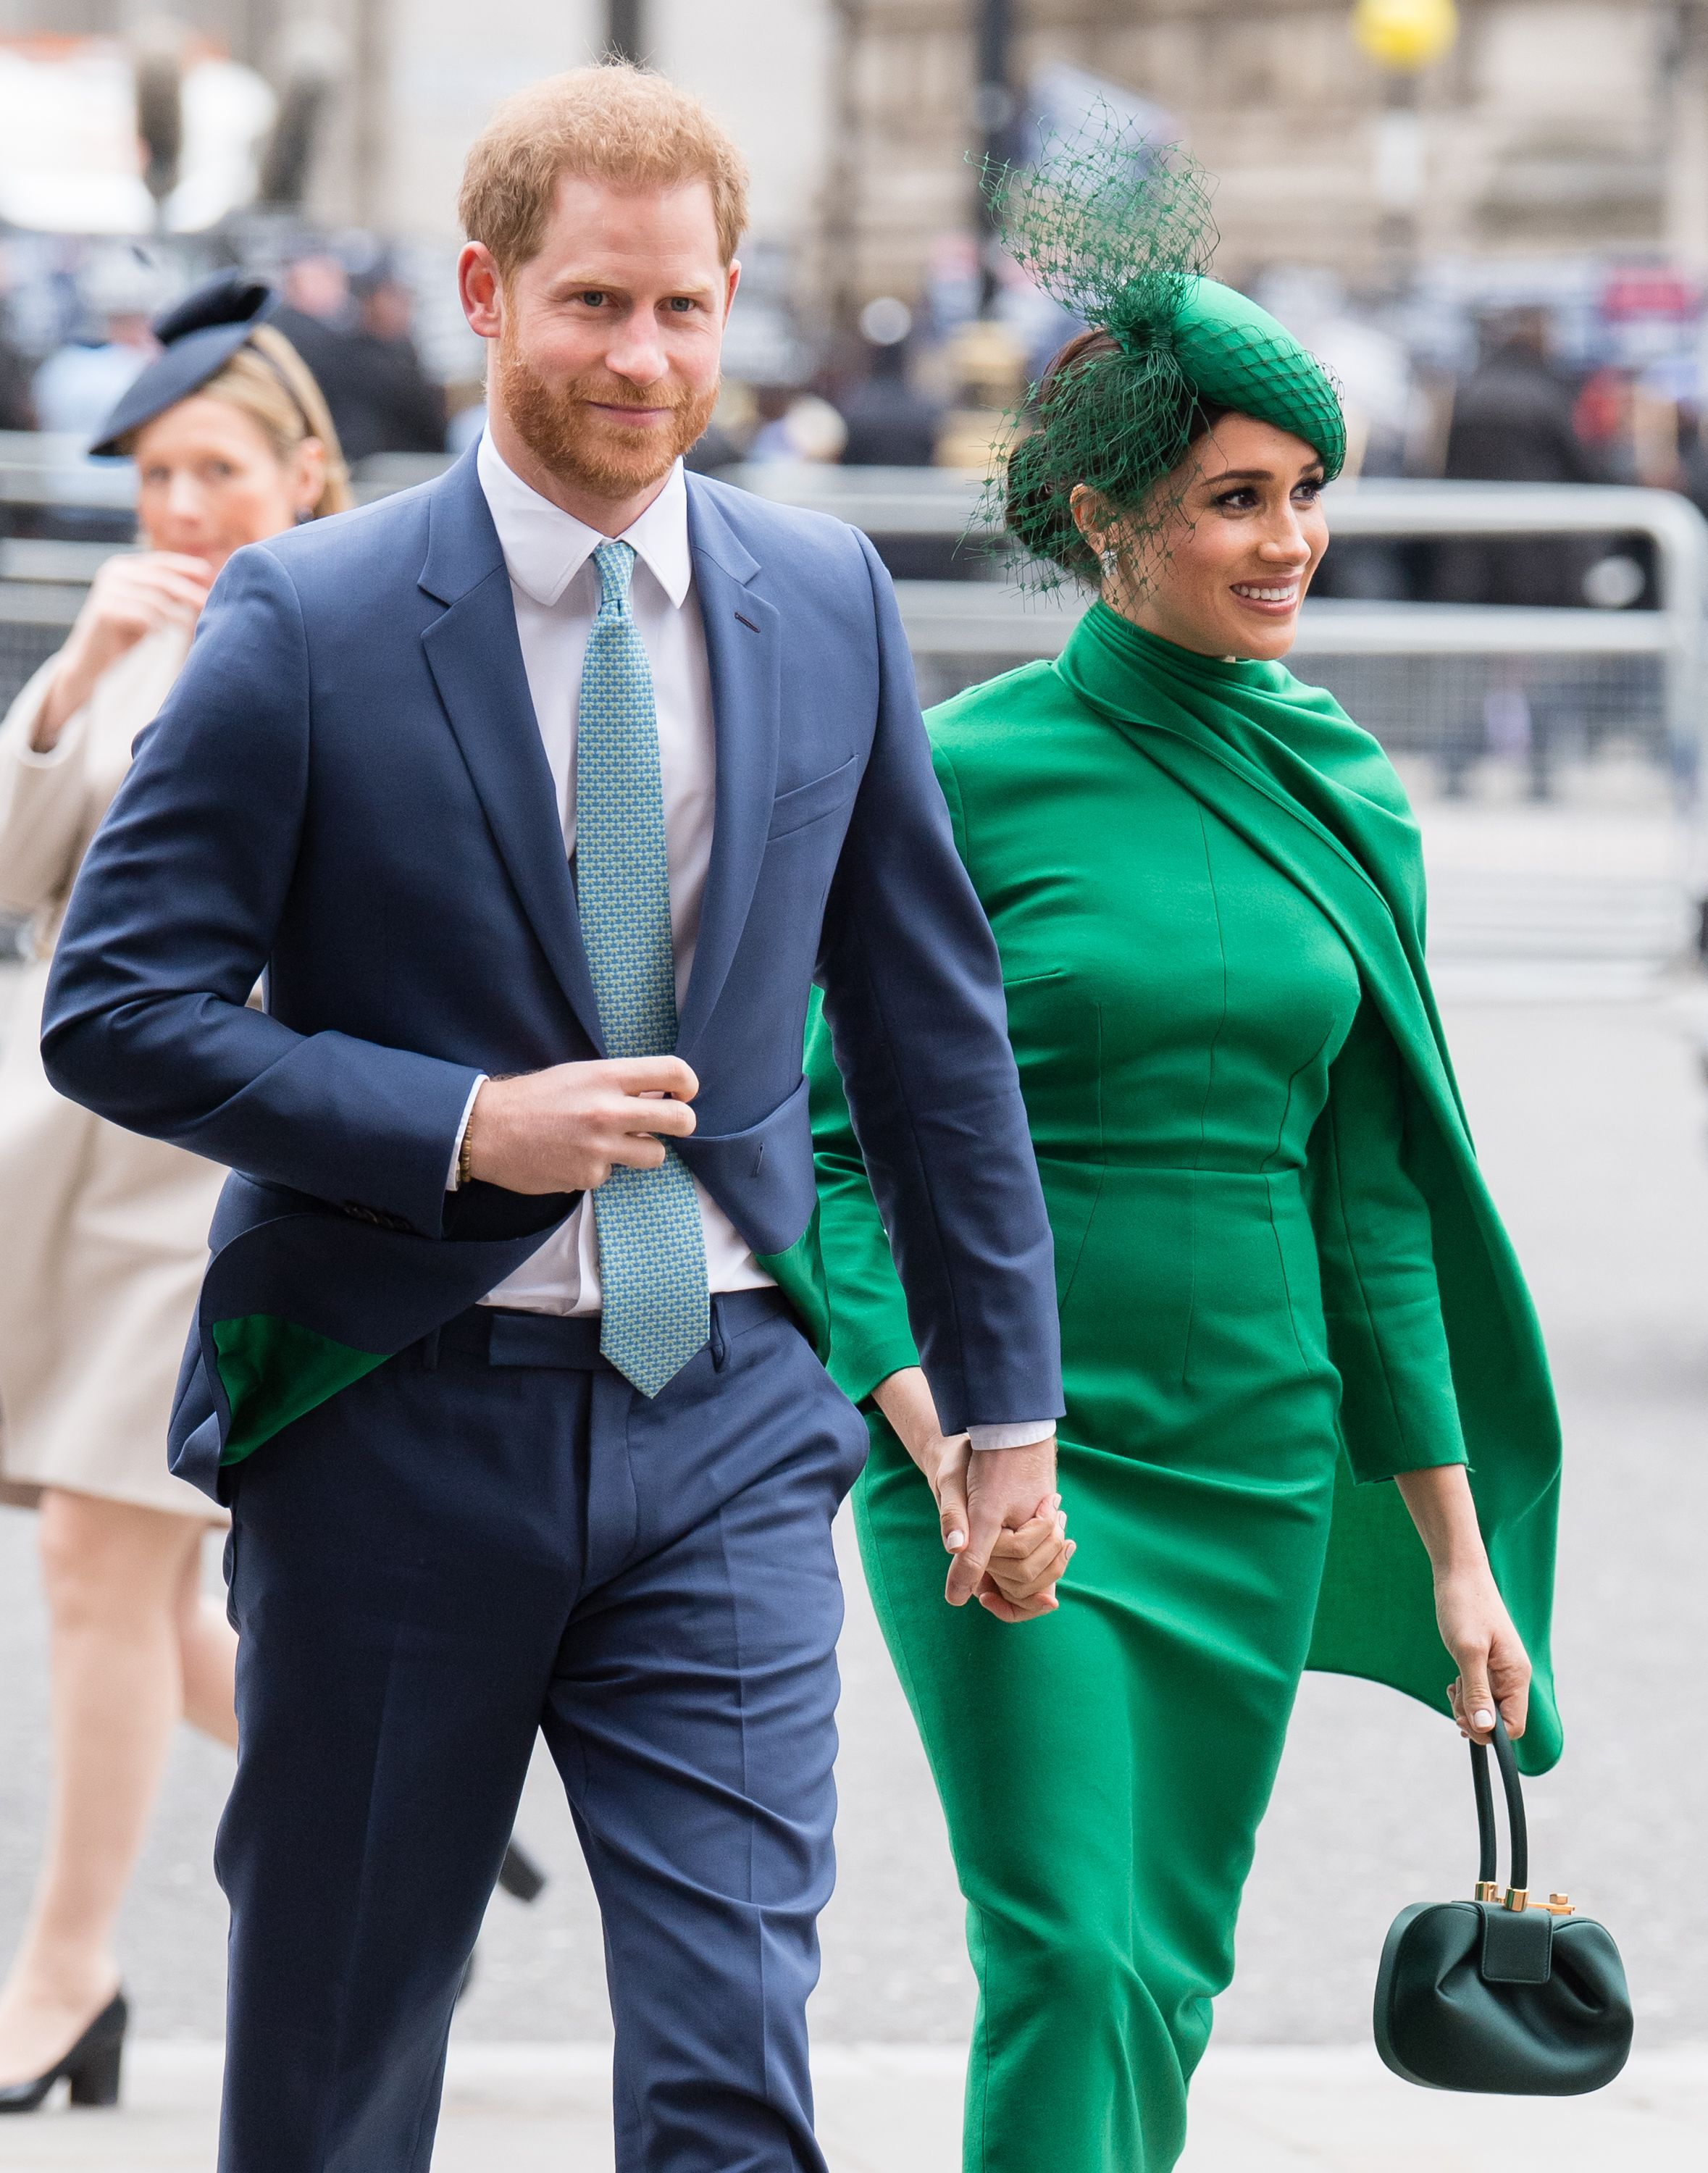 Prince Harry and Meghan Markle at the Commonwealth Day Service 2020 on March 09, 2020 | Photo: Getty Images